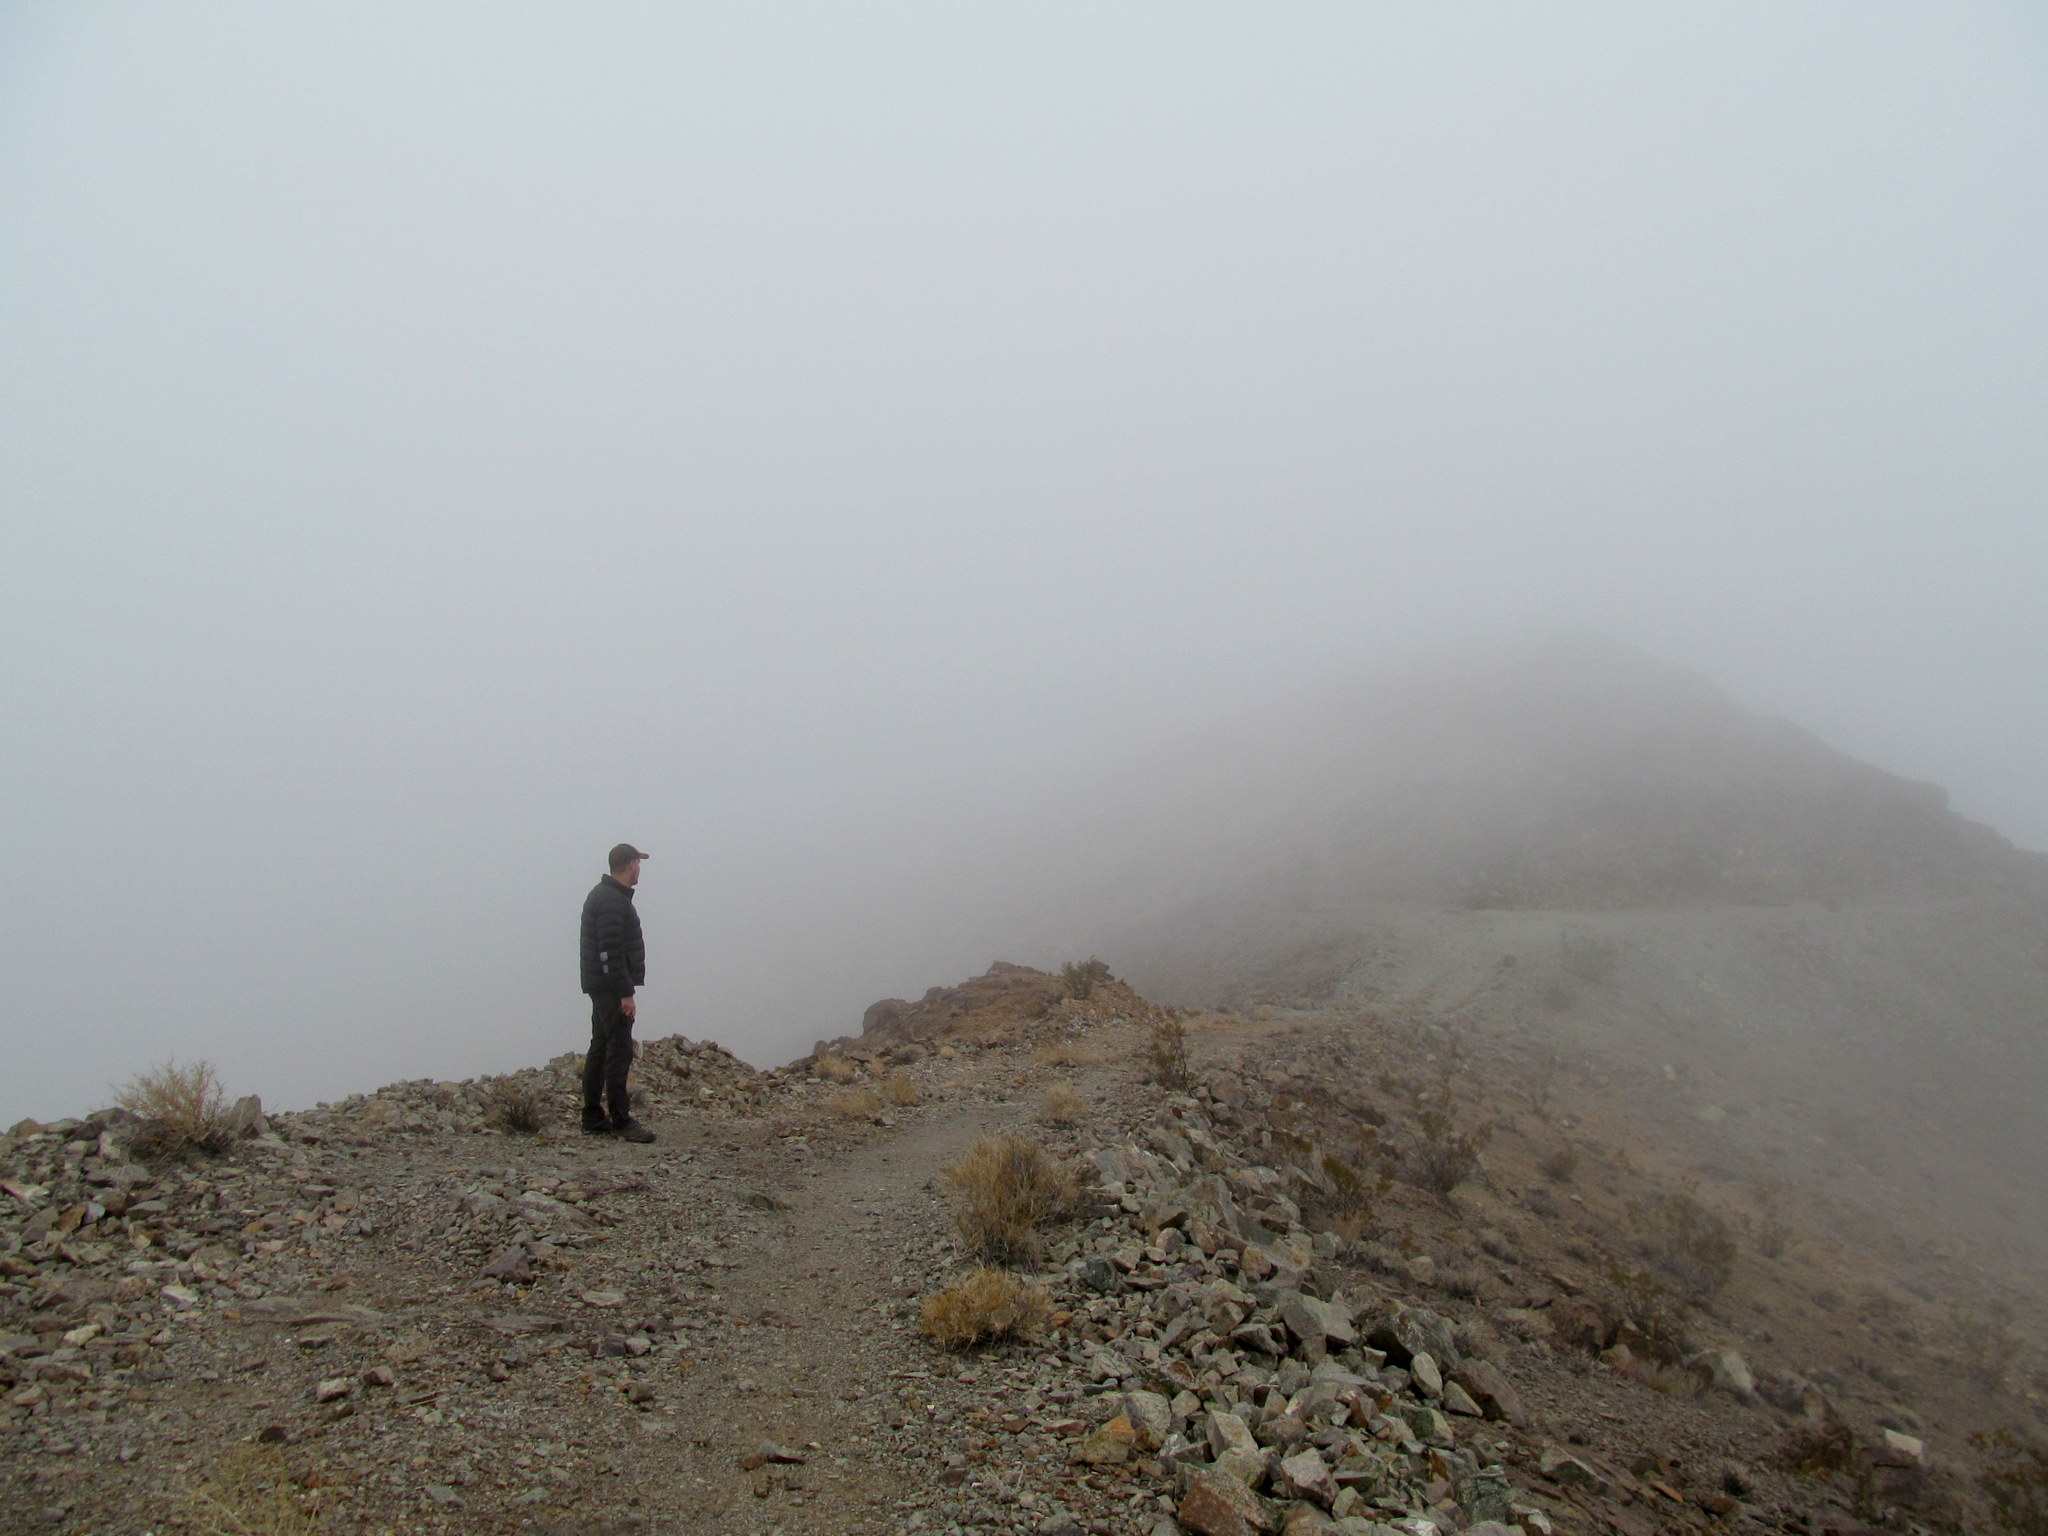 Photo: Looking for the Ubehebe Mine through the fog